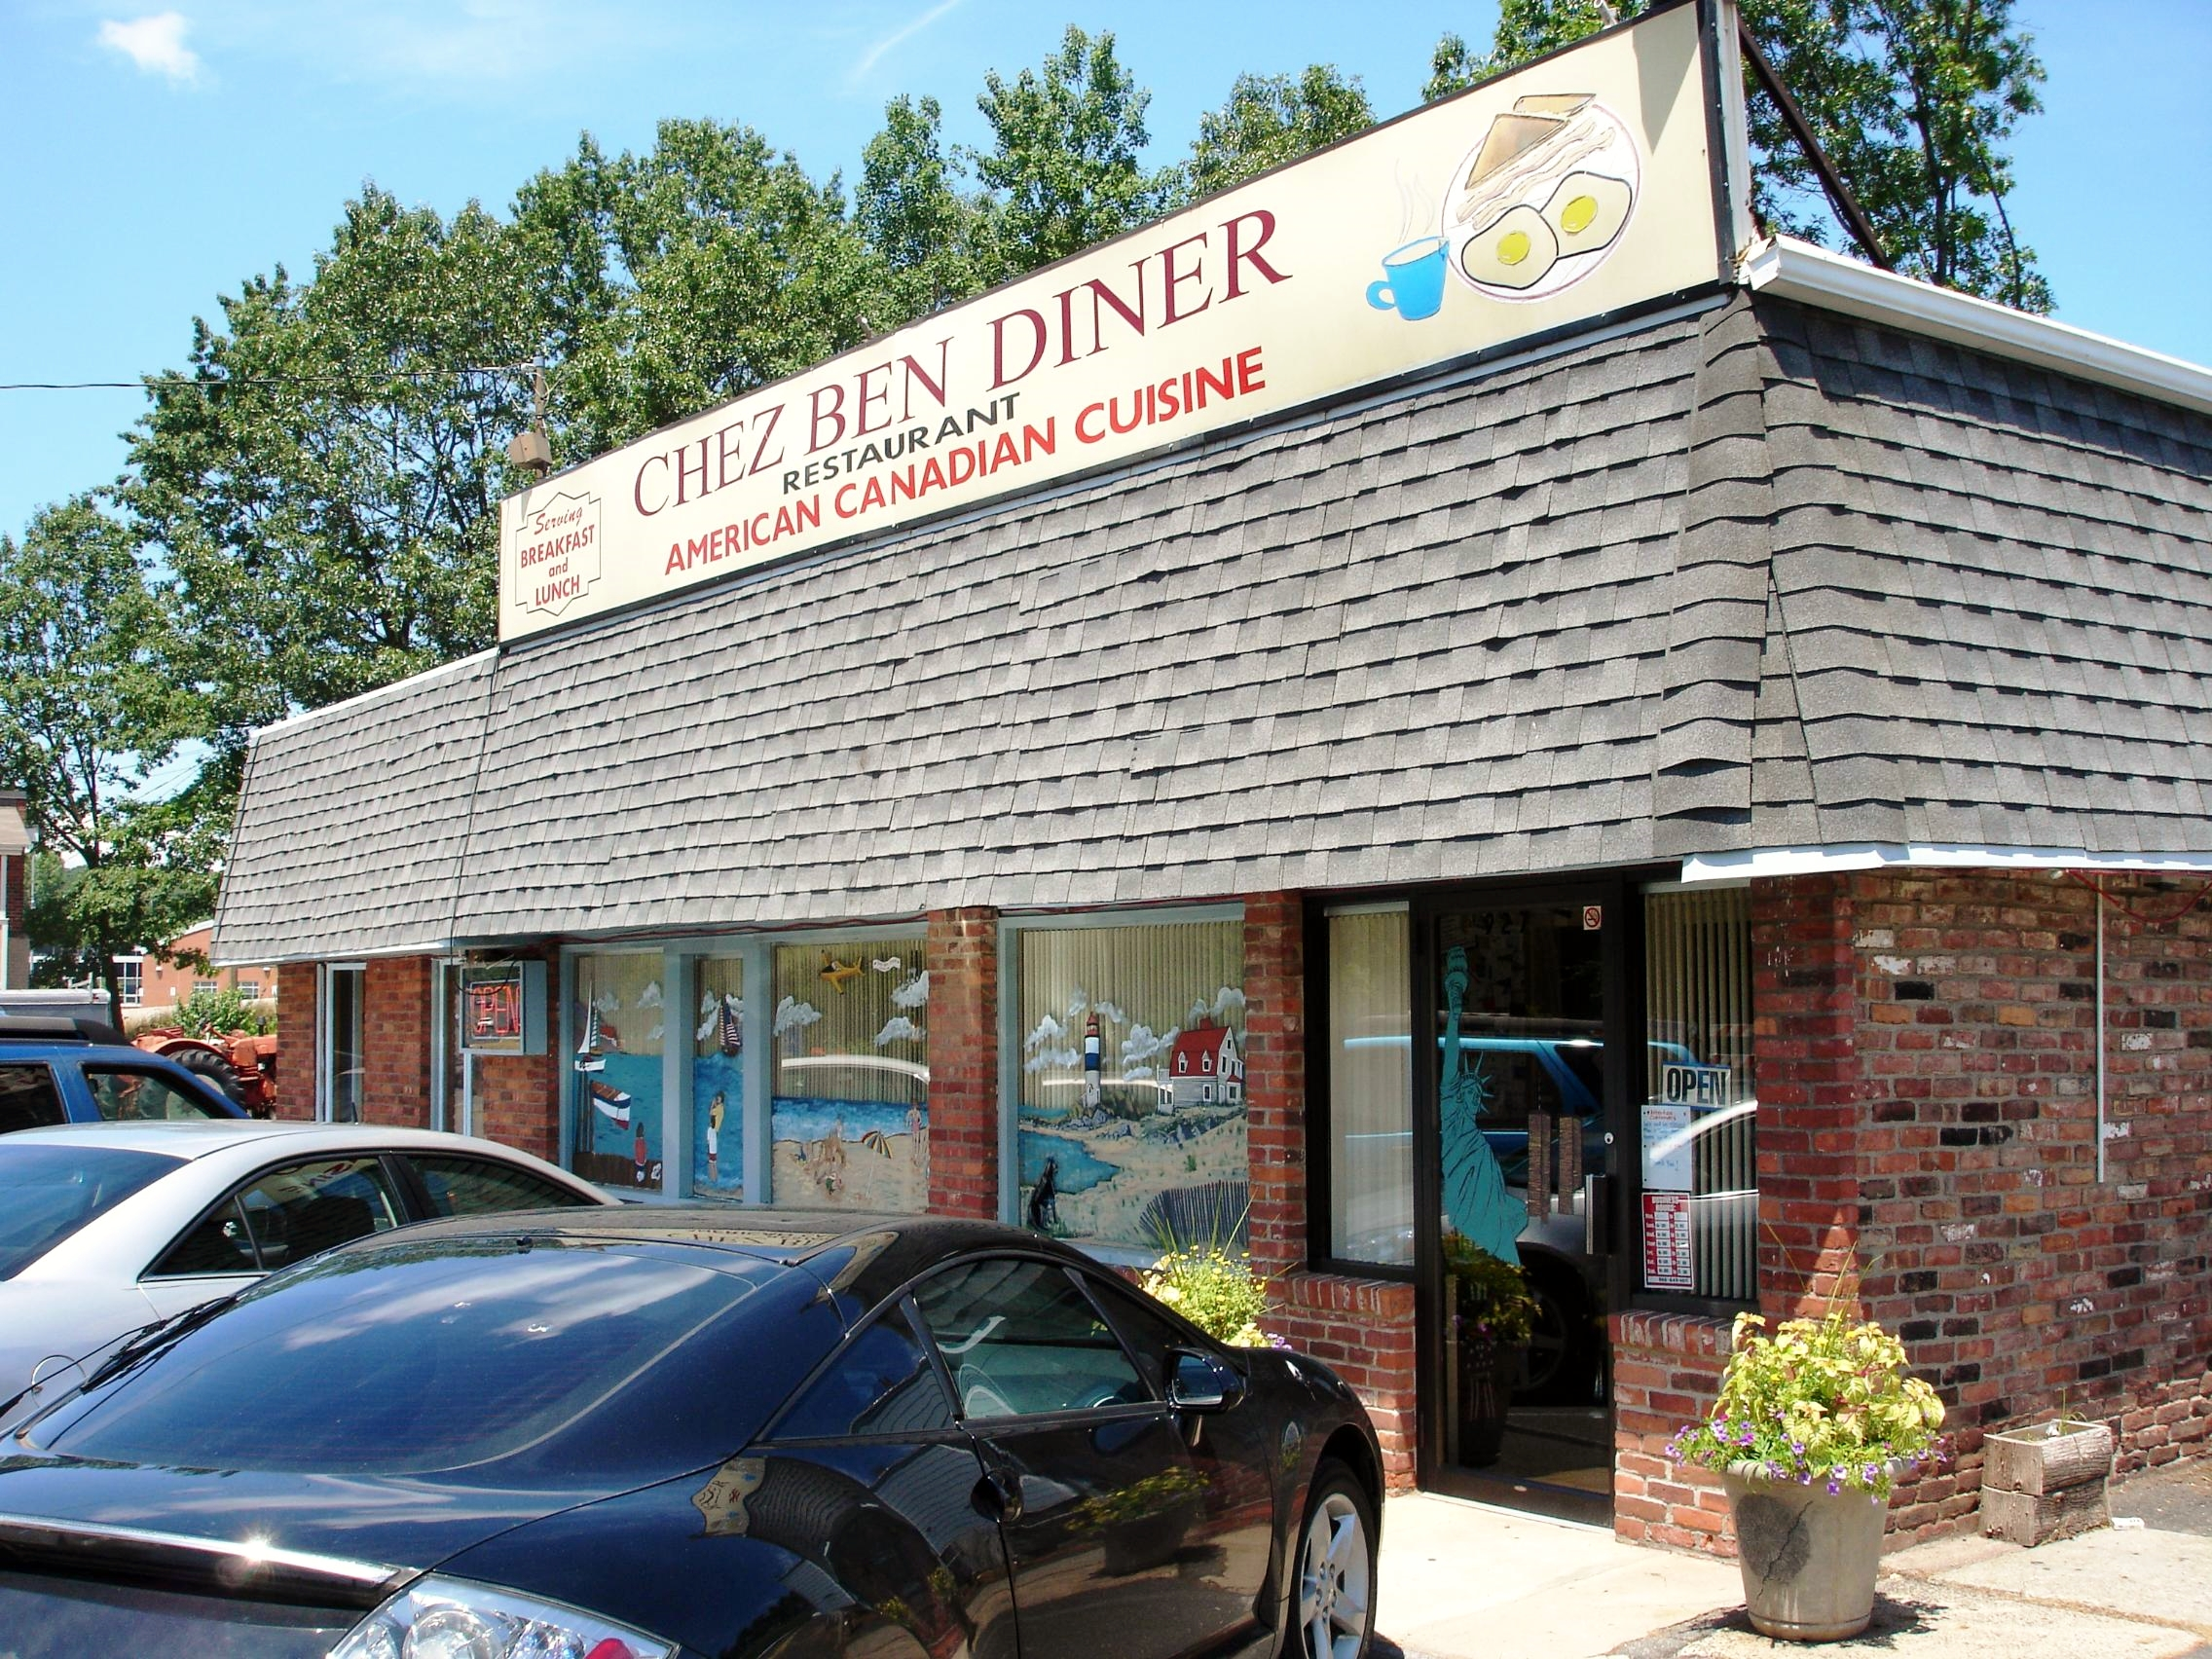 The Chez Ben is one of the southernmost outposts for exotic Canadian cuisine.